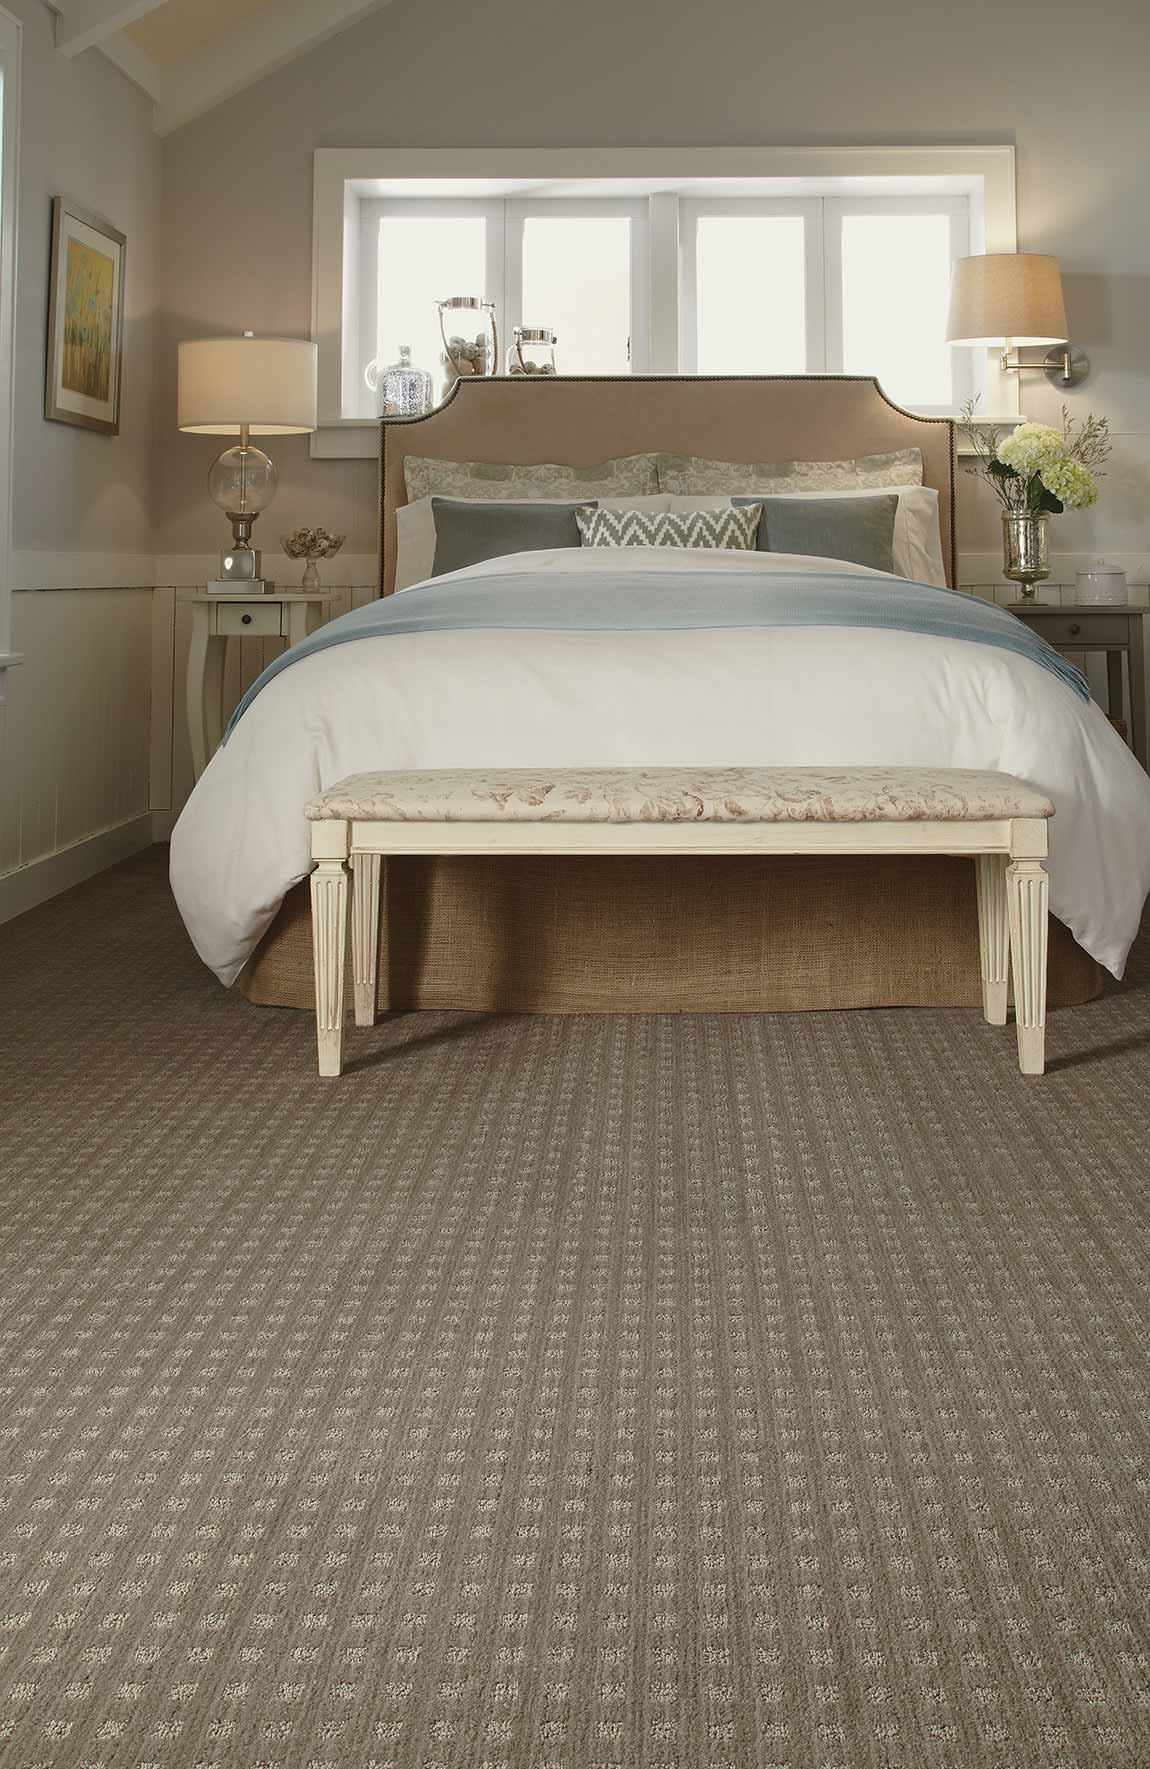 Coastal Beach House Bedroom Flooring Designs | Flooring America